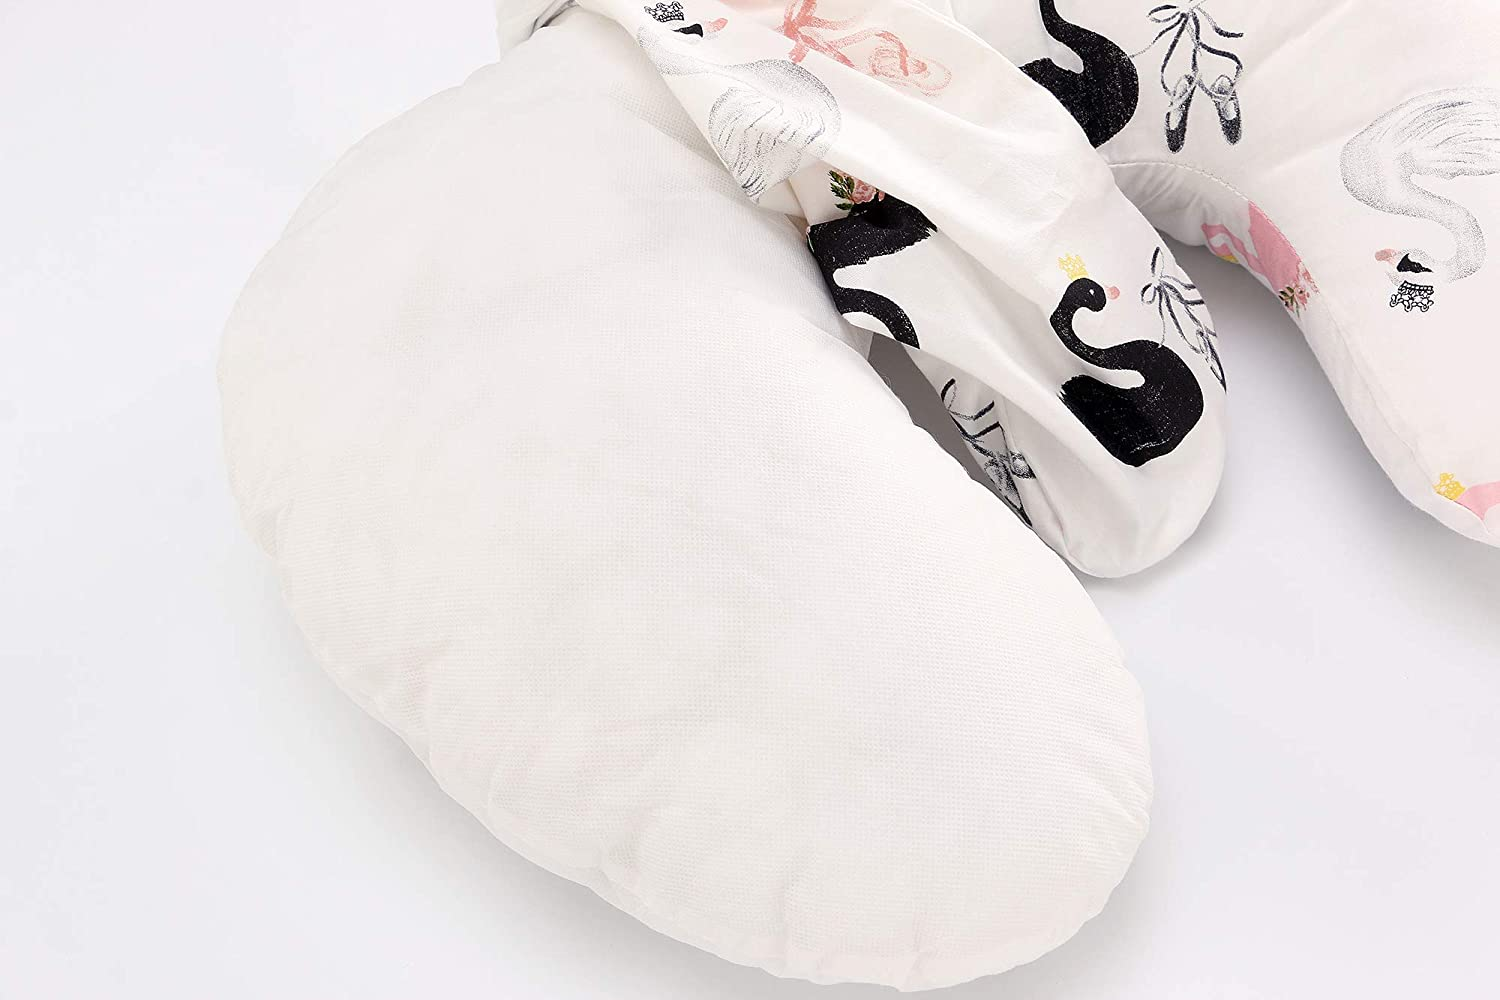 U-Shaped Nursing Breastfeeding Pillow Pure Cotton Comfortable Portable Cover Slip Protect Waist Cushion for Mom and Baby Crown Swan